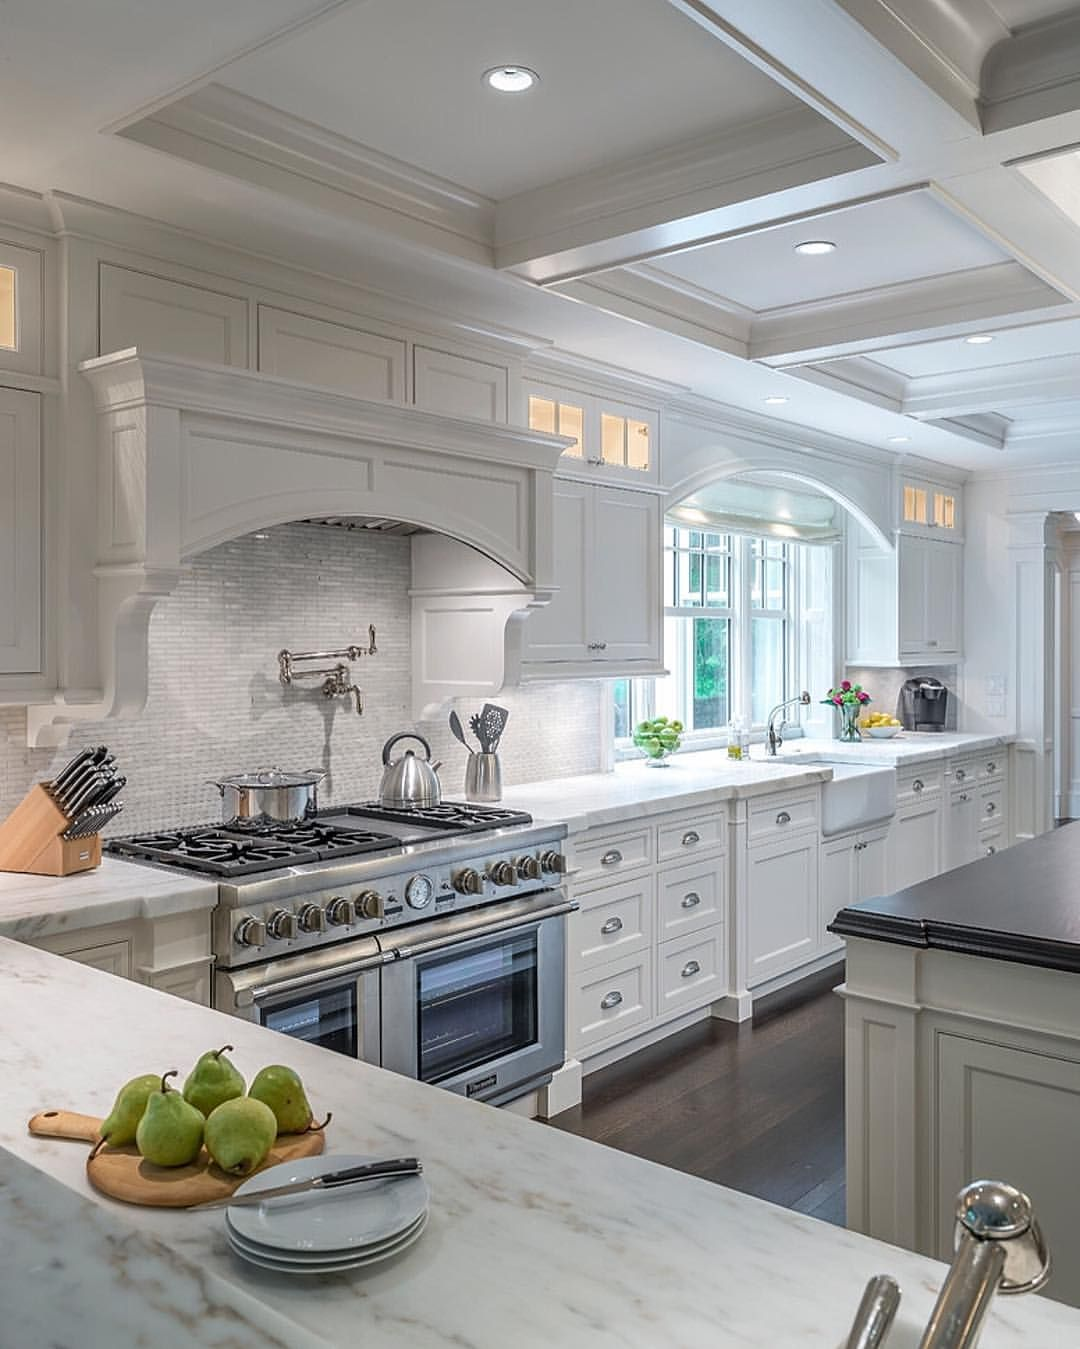 White Kitchen Hardwood Floors from the rich hardwood floors to the spectacular coffered ceiling